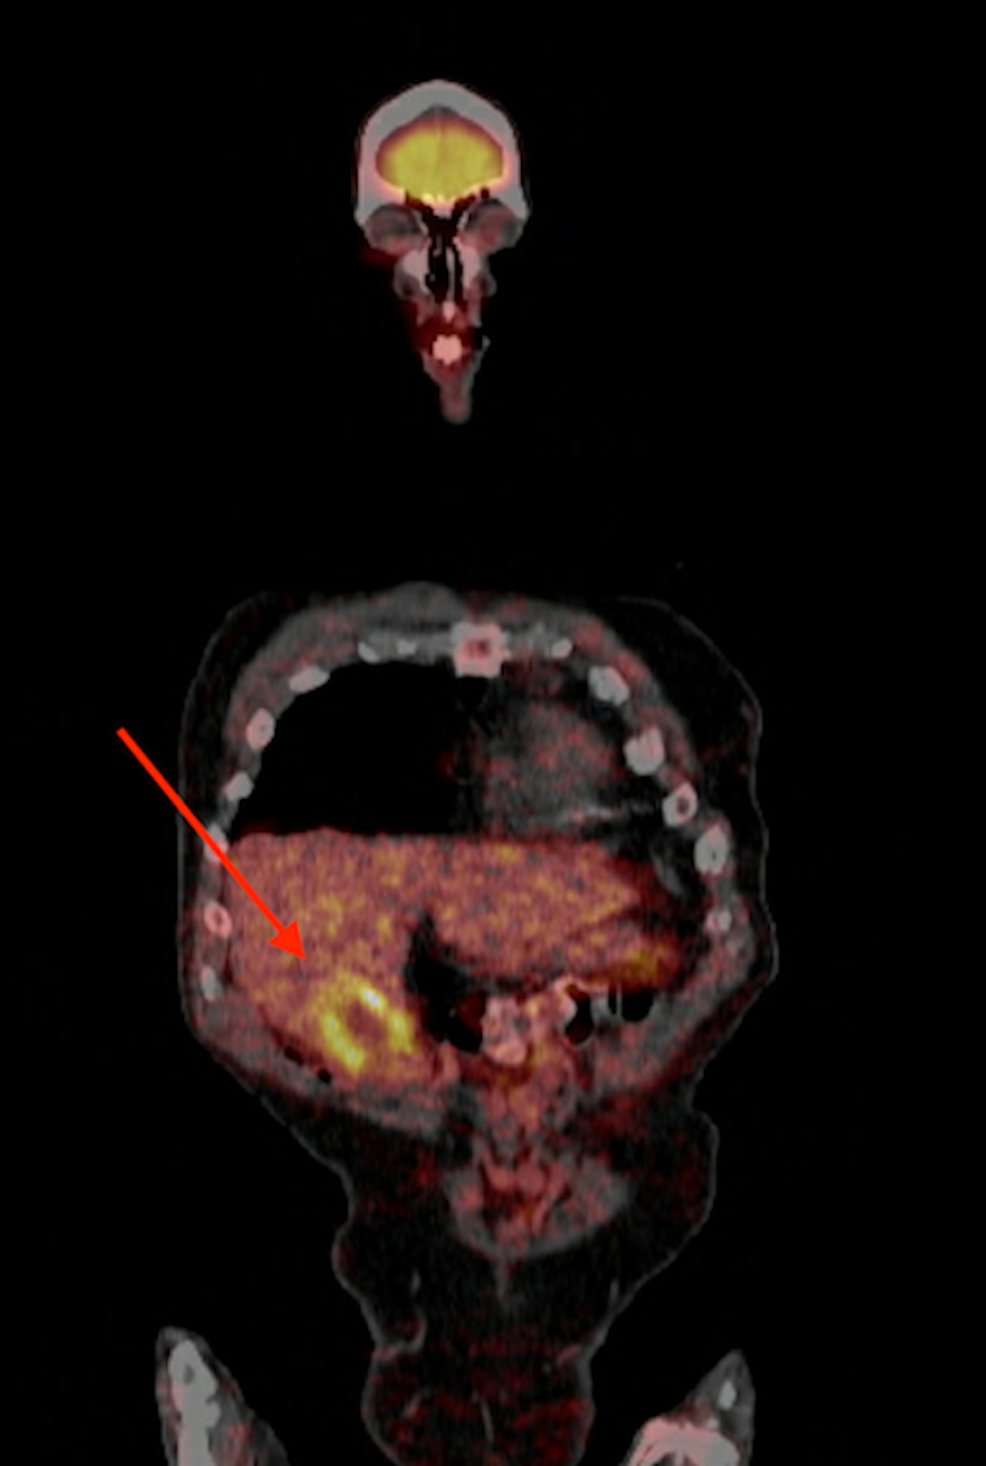 Positron-emission-tomography-scan-showing-increased-update-around-the-gallbladder.